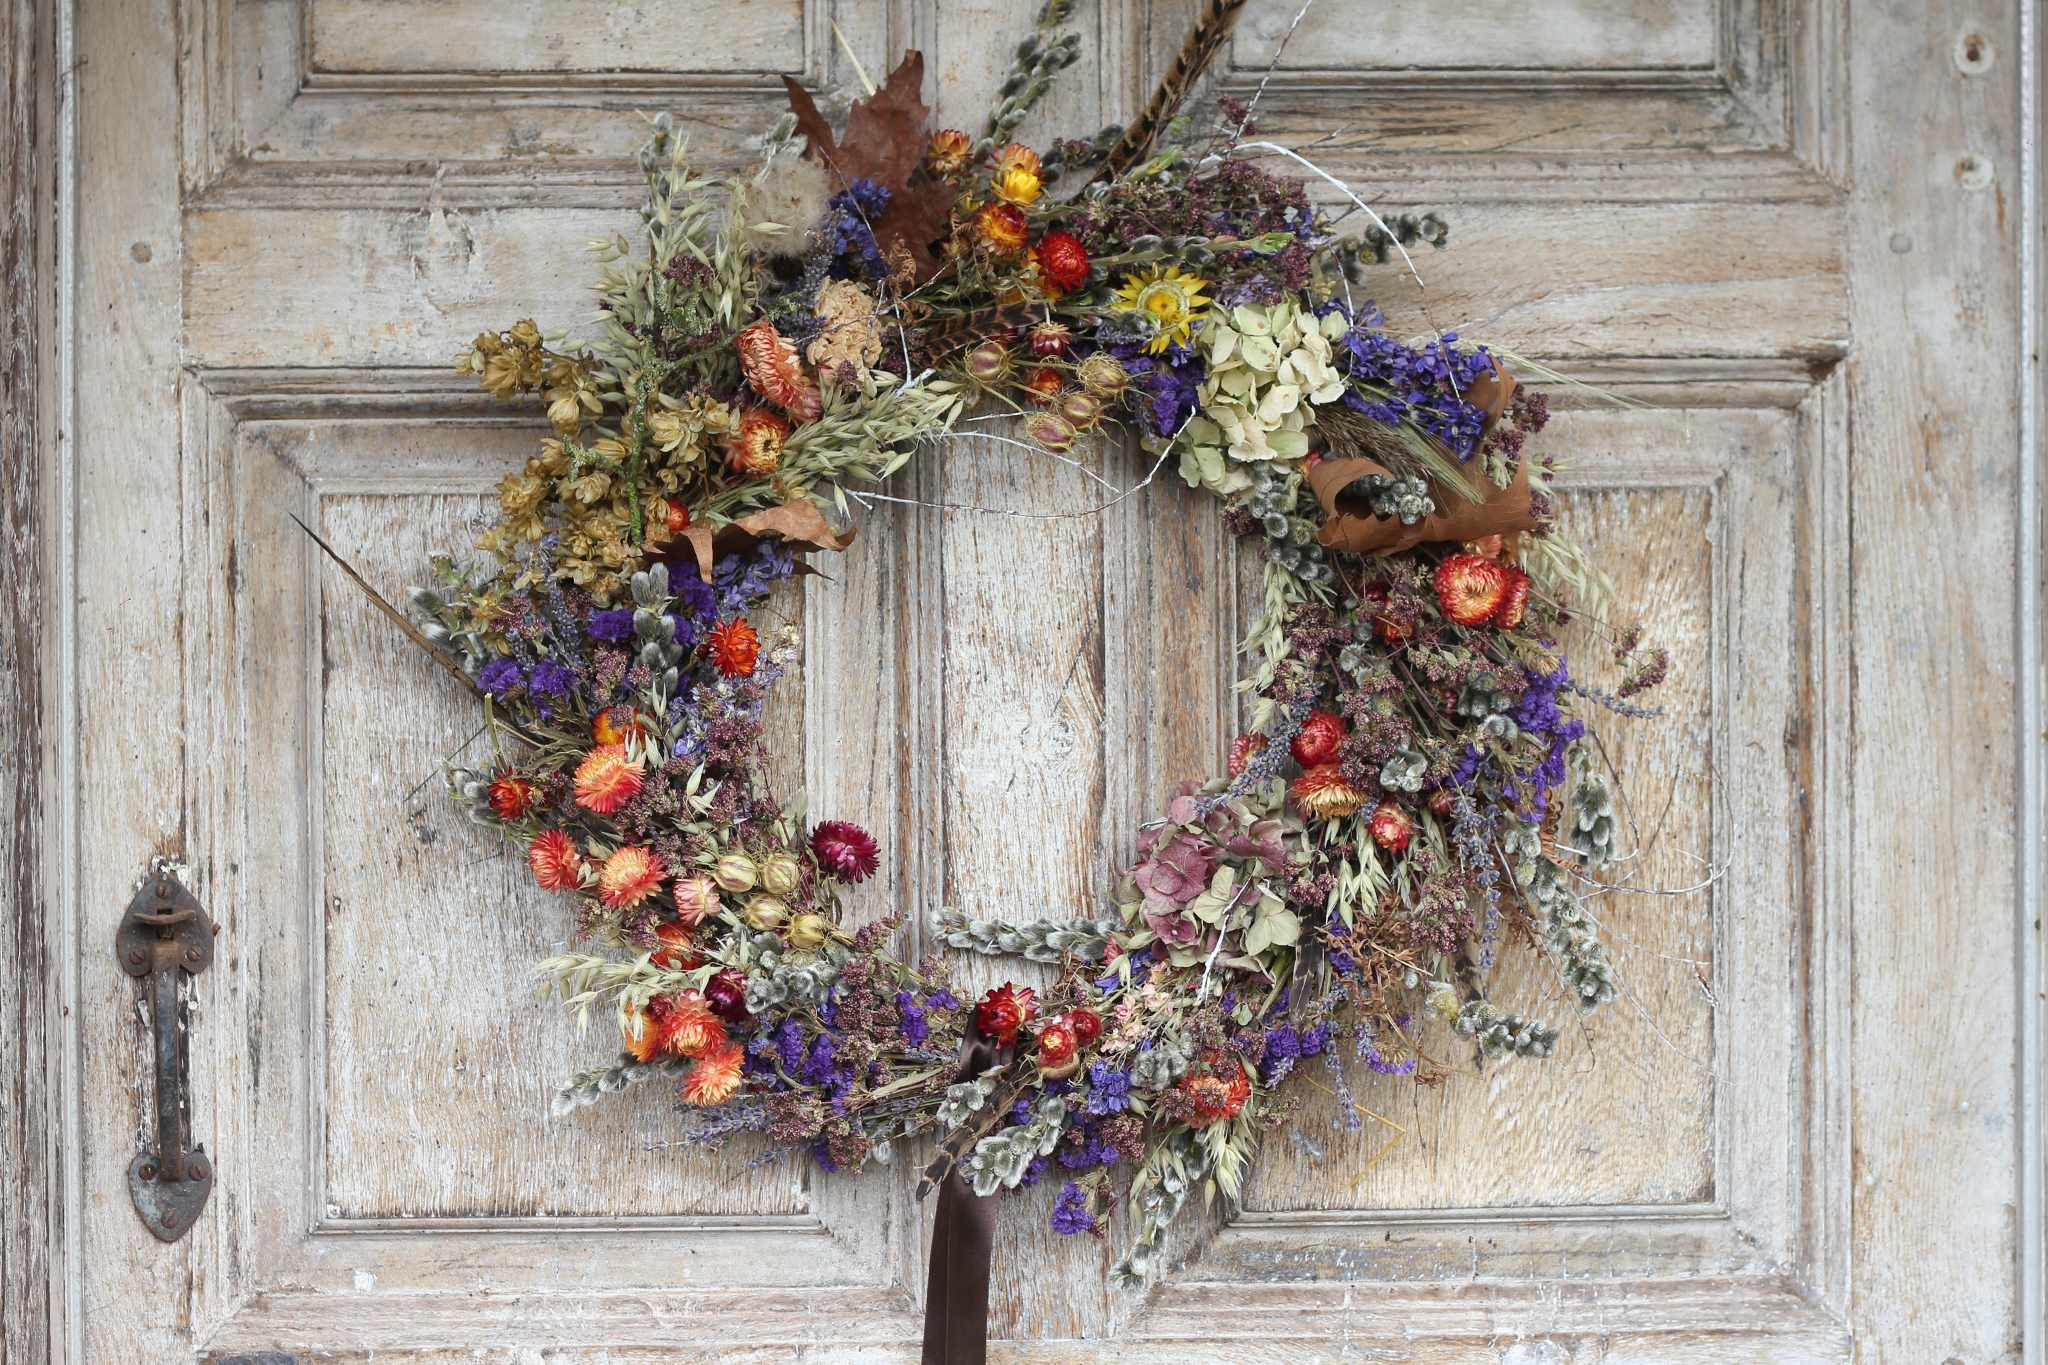 wiggly-wigglers-dried-flowers-wreath-2048-1365